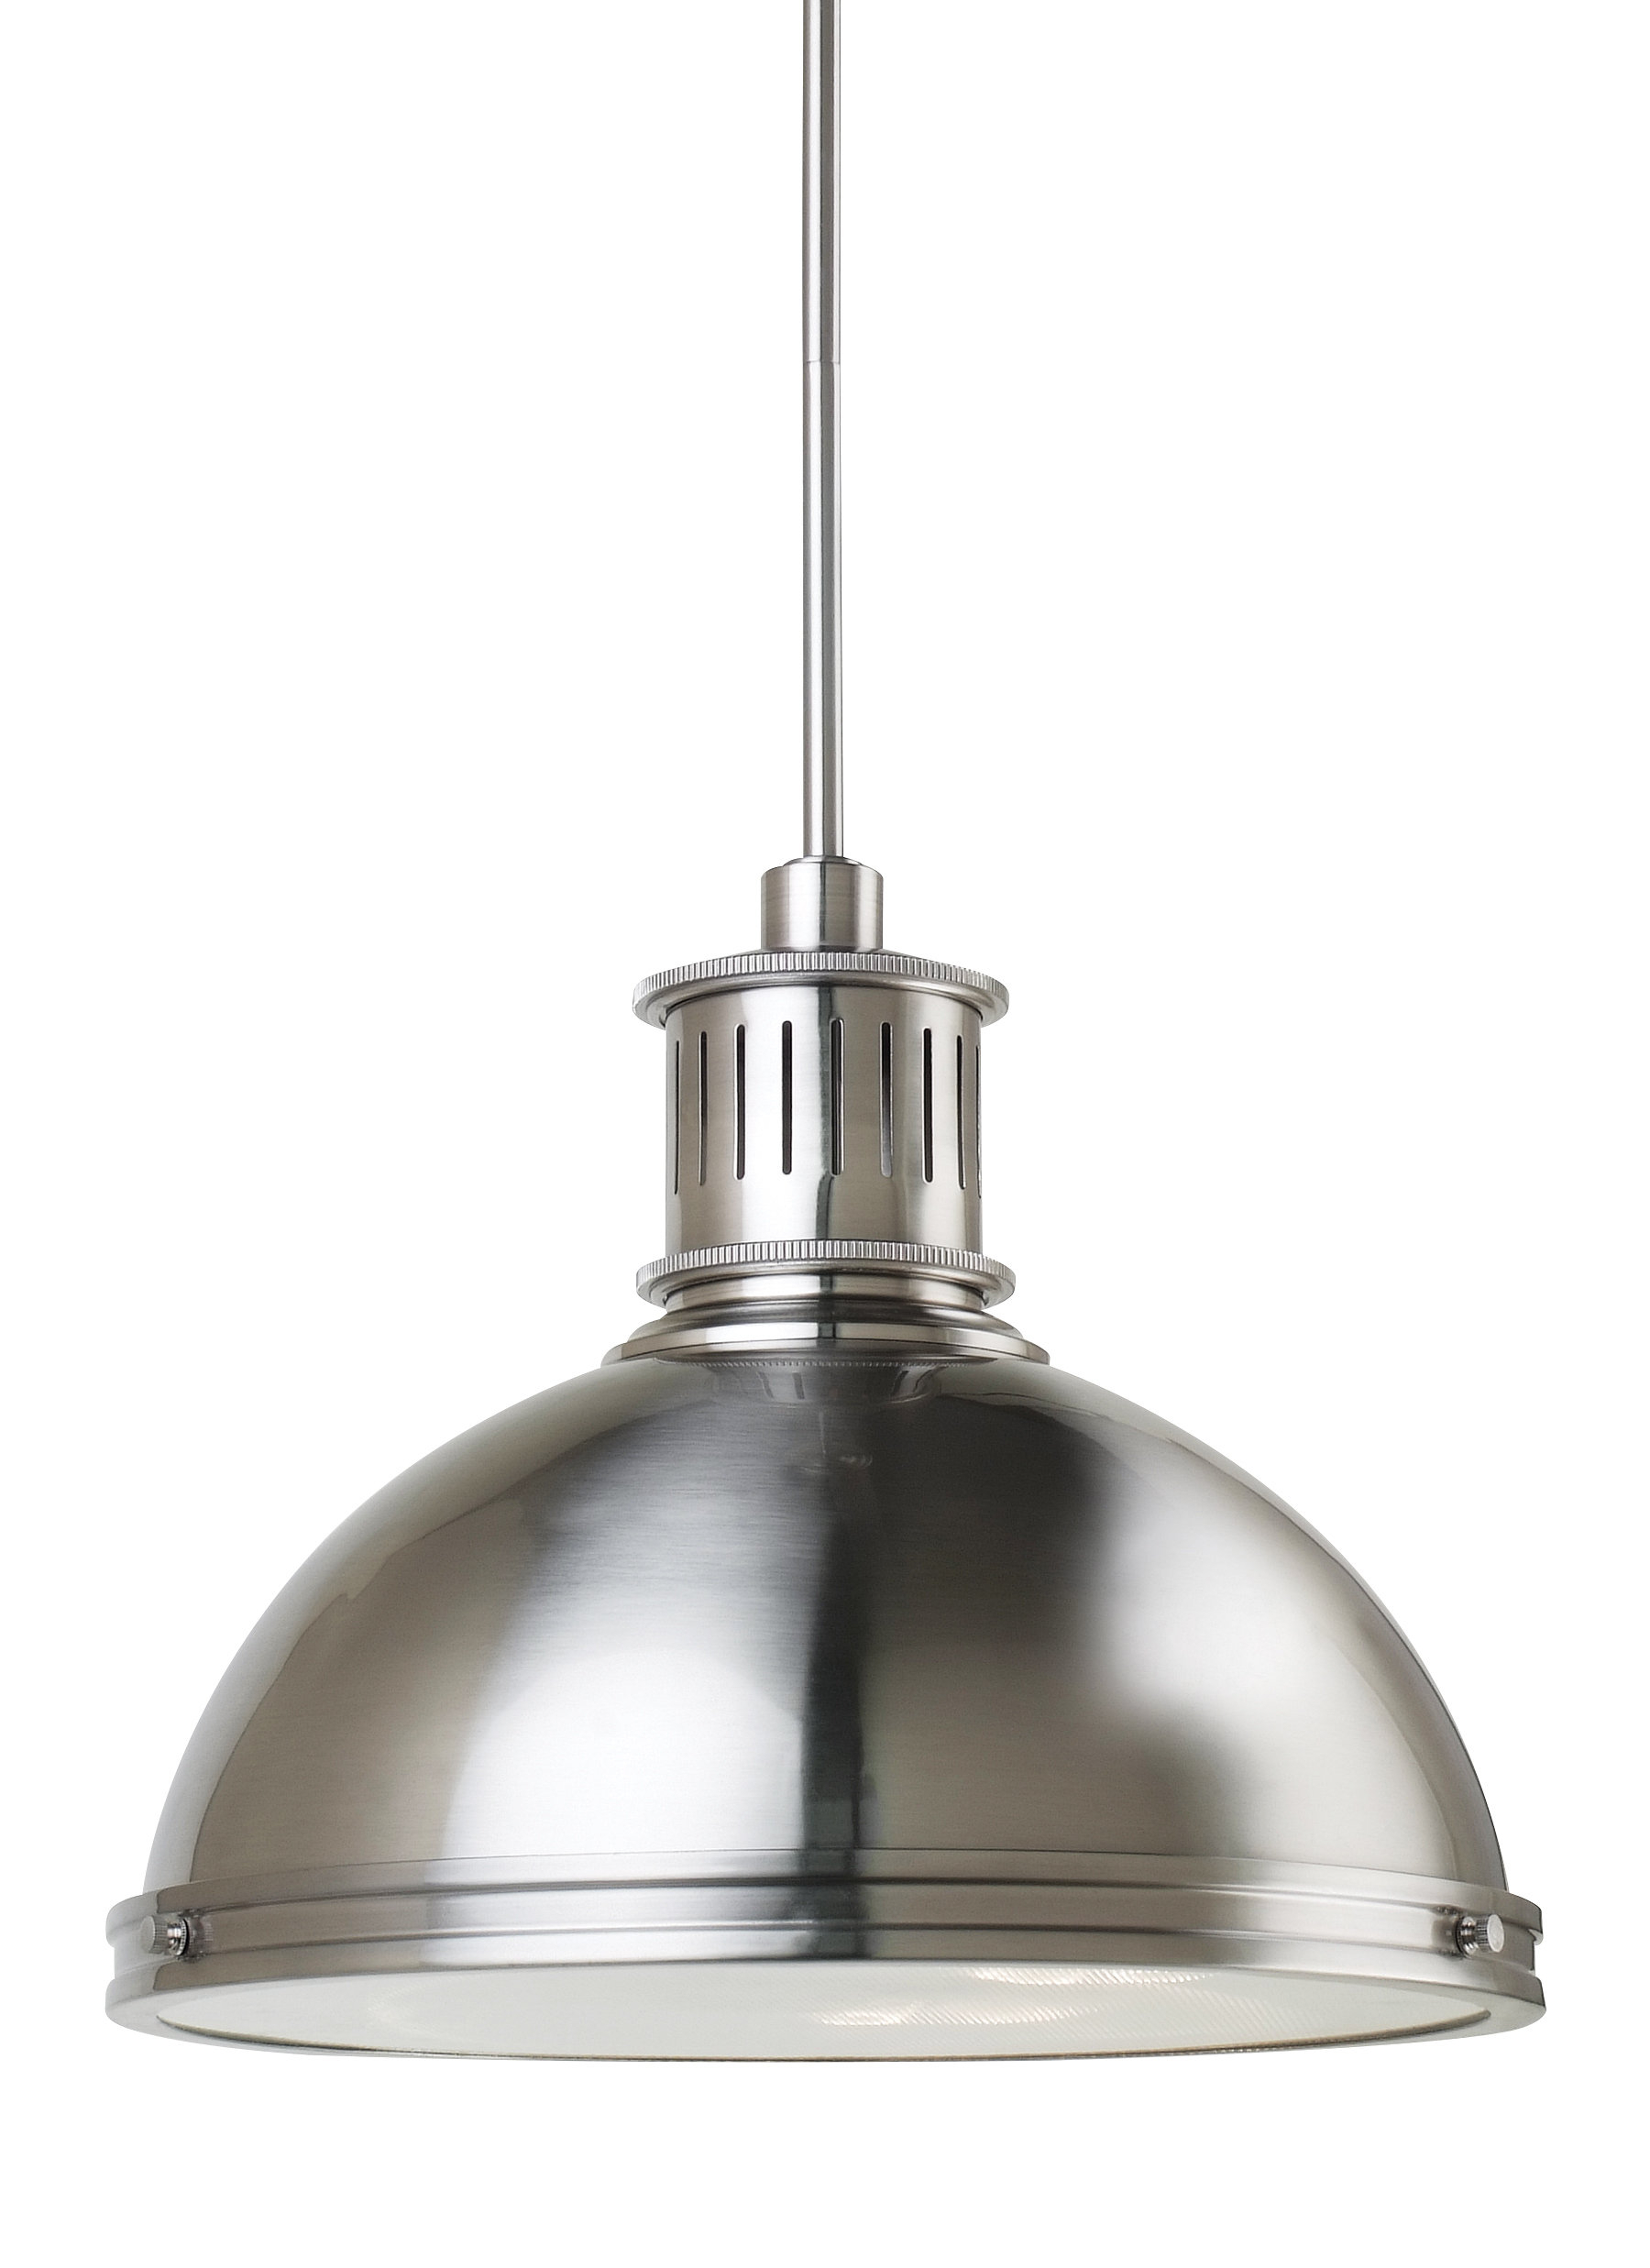 Newest Amara 2-Light Dome Pendants pertaining to Amara 3-Light Dome Pendant